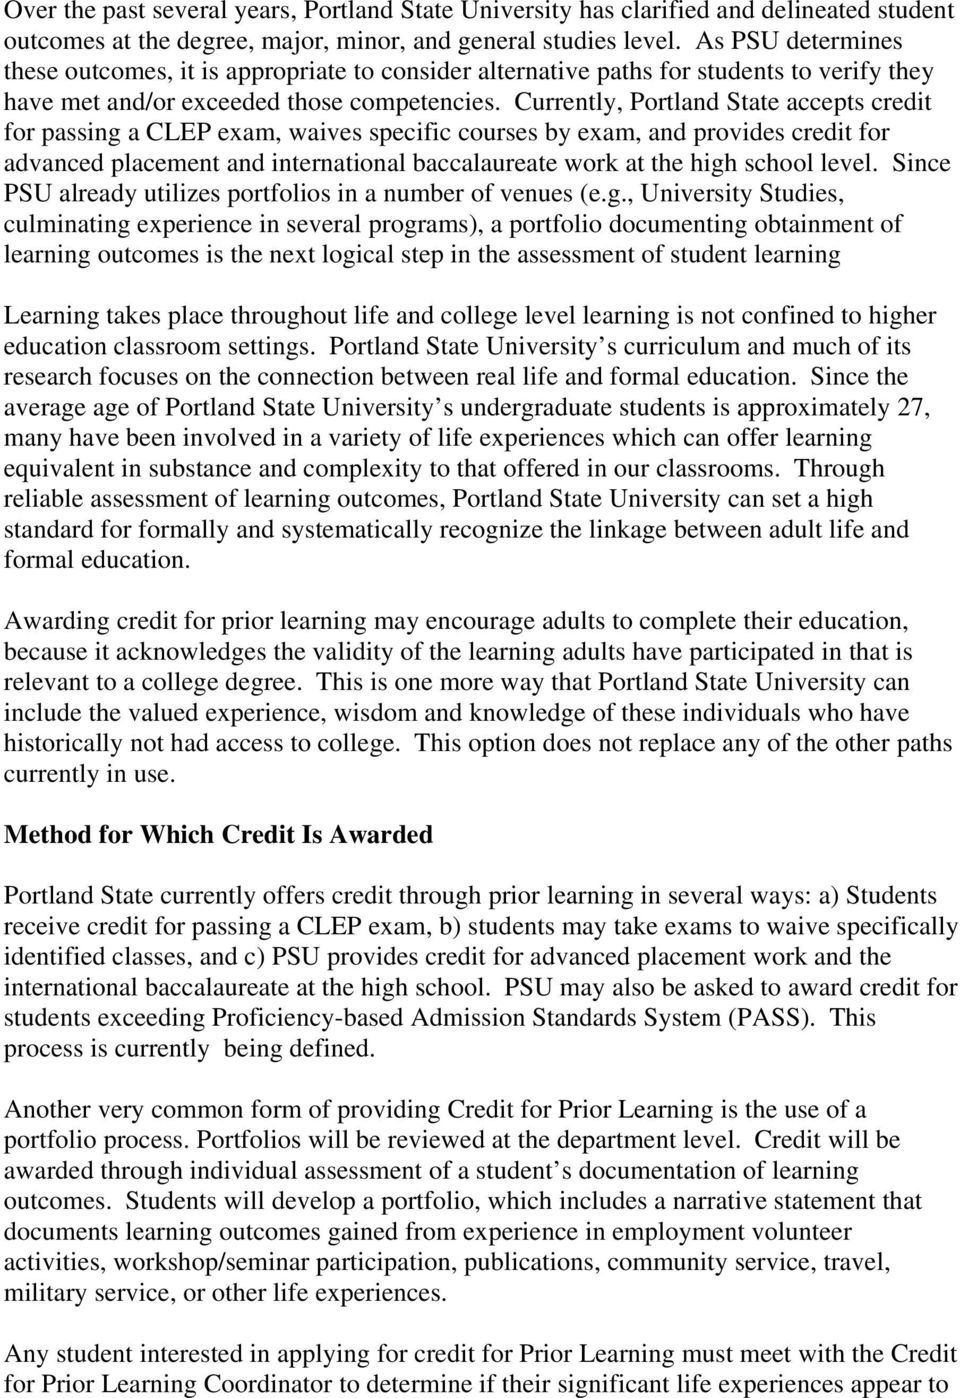 Currently, Portland State accepts credit for passing a CLEP exam, waives specific courses by exam, and provides credit for advanced placement and international baccalaureate work at the high school